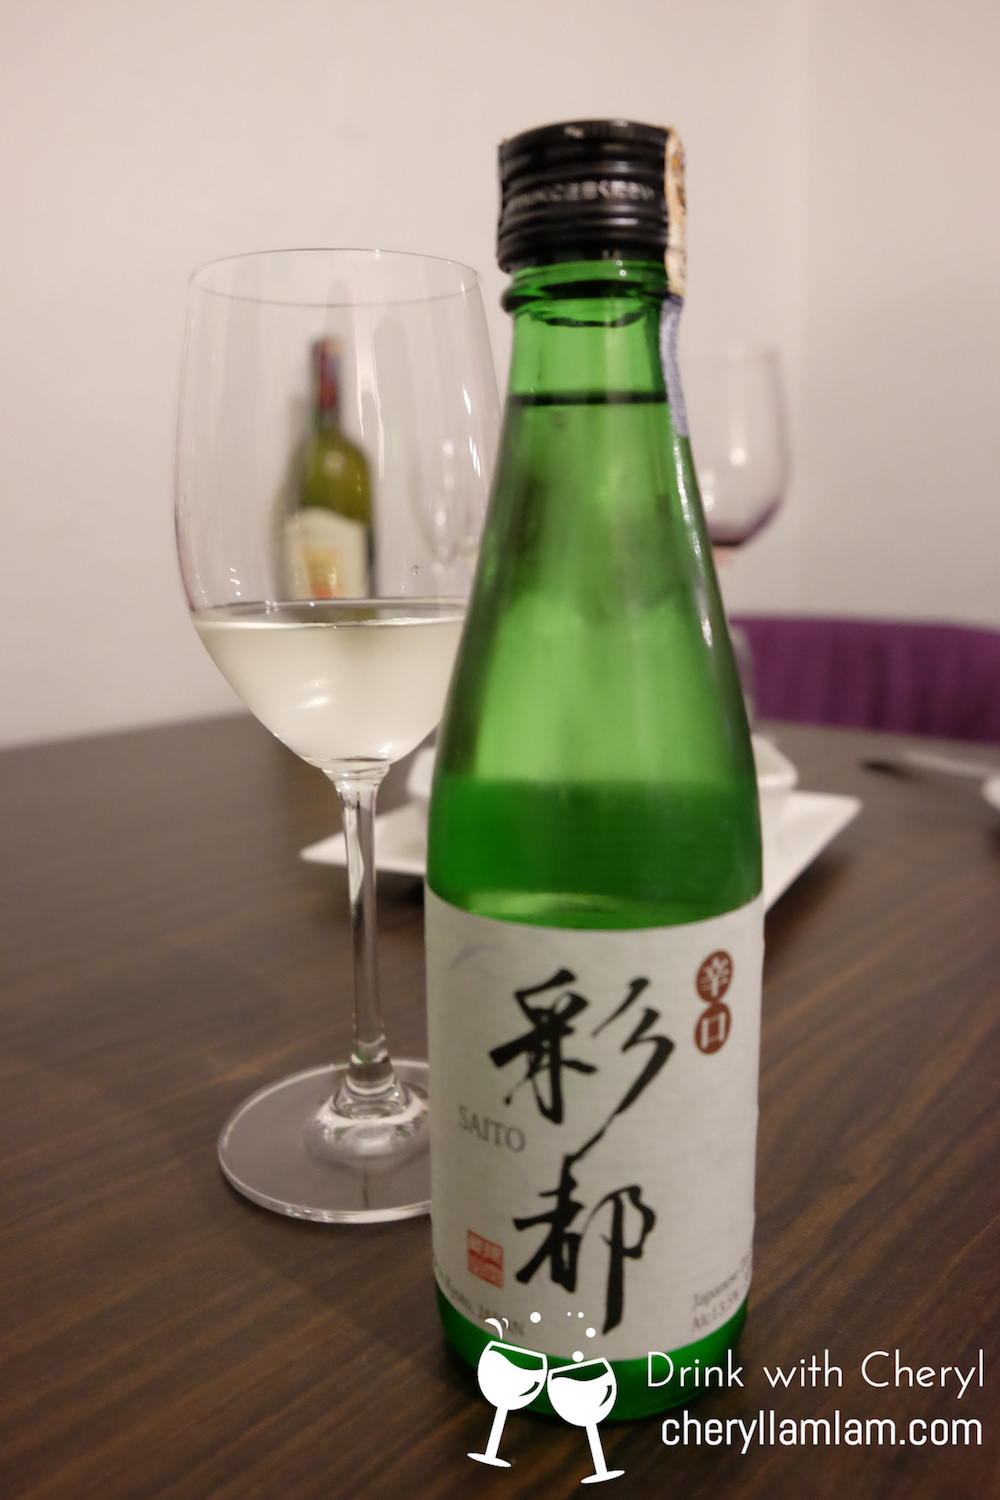 Saito Karakuchi Dry Sake - clean and refreshing dry sake which can be matched with a wide variety of food.